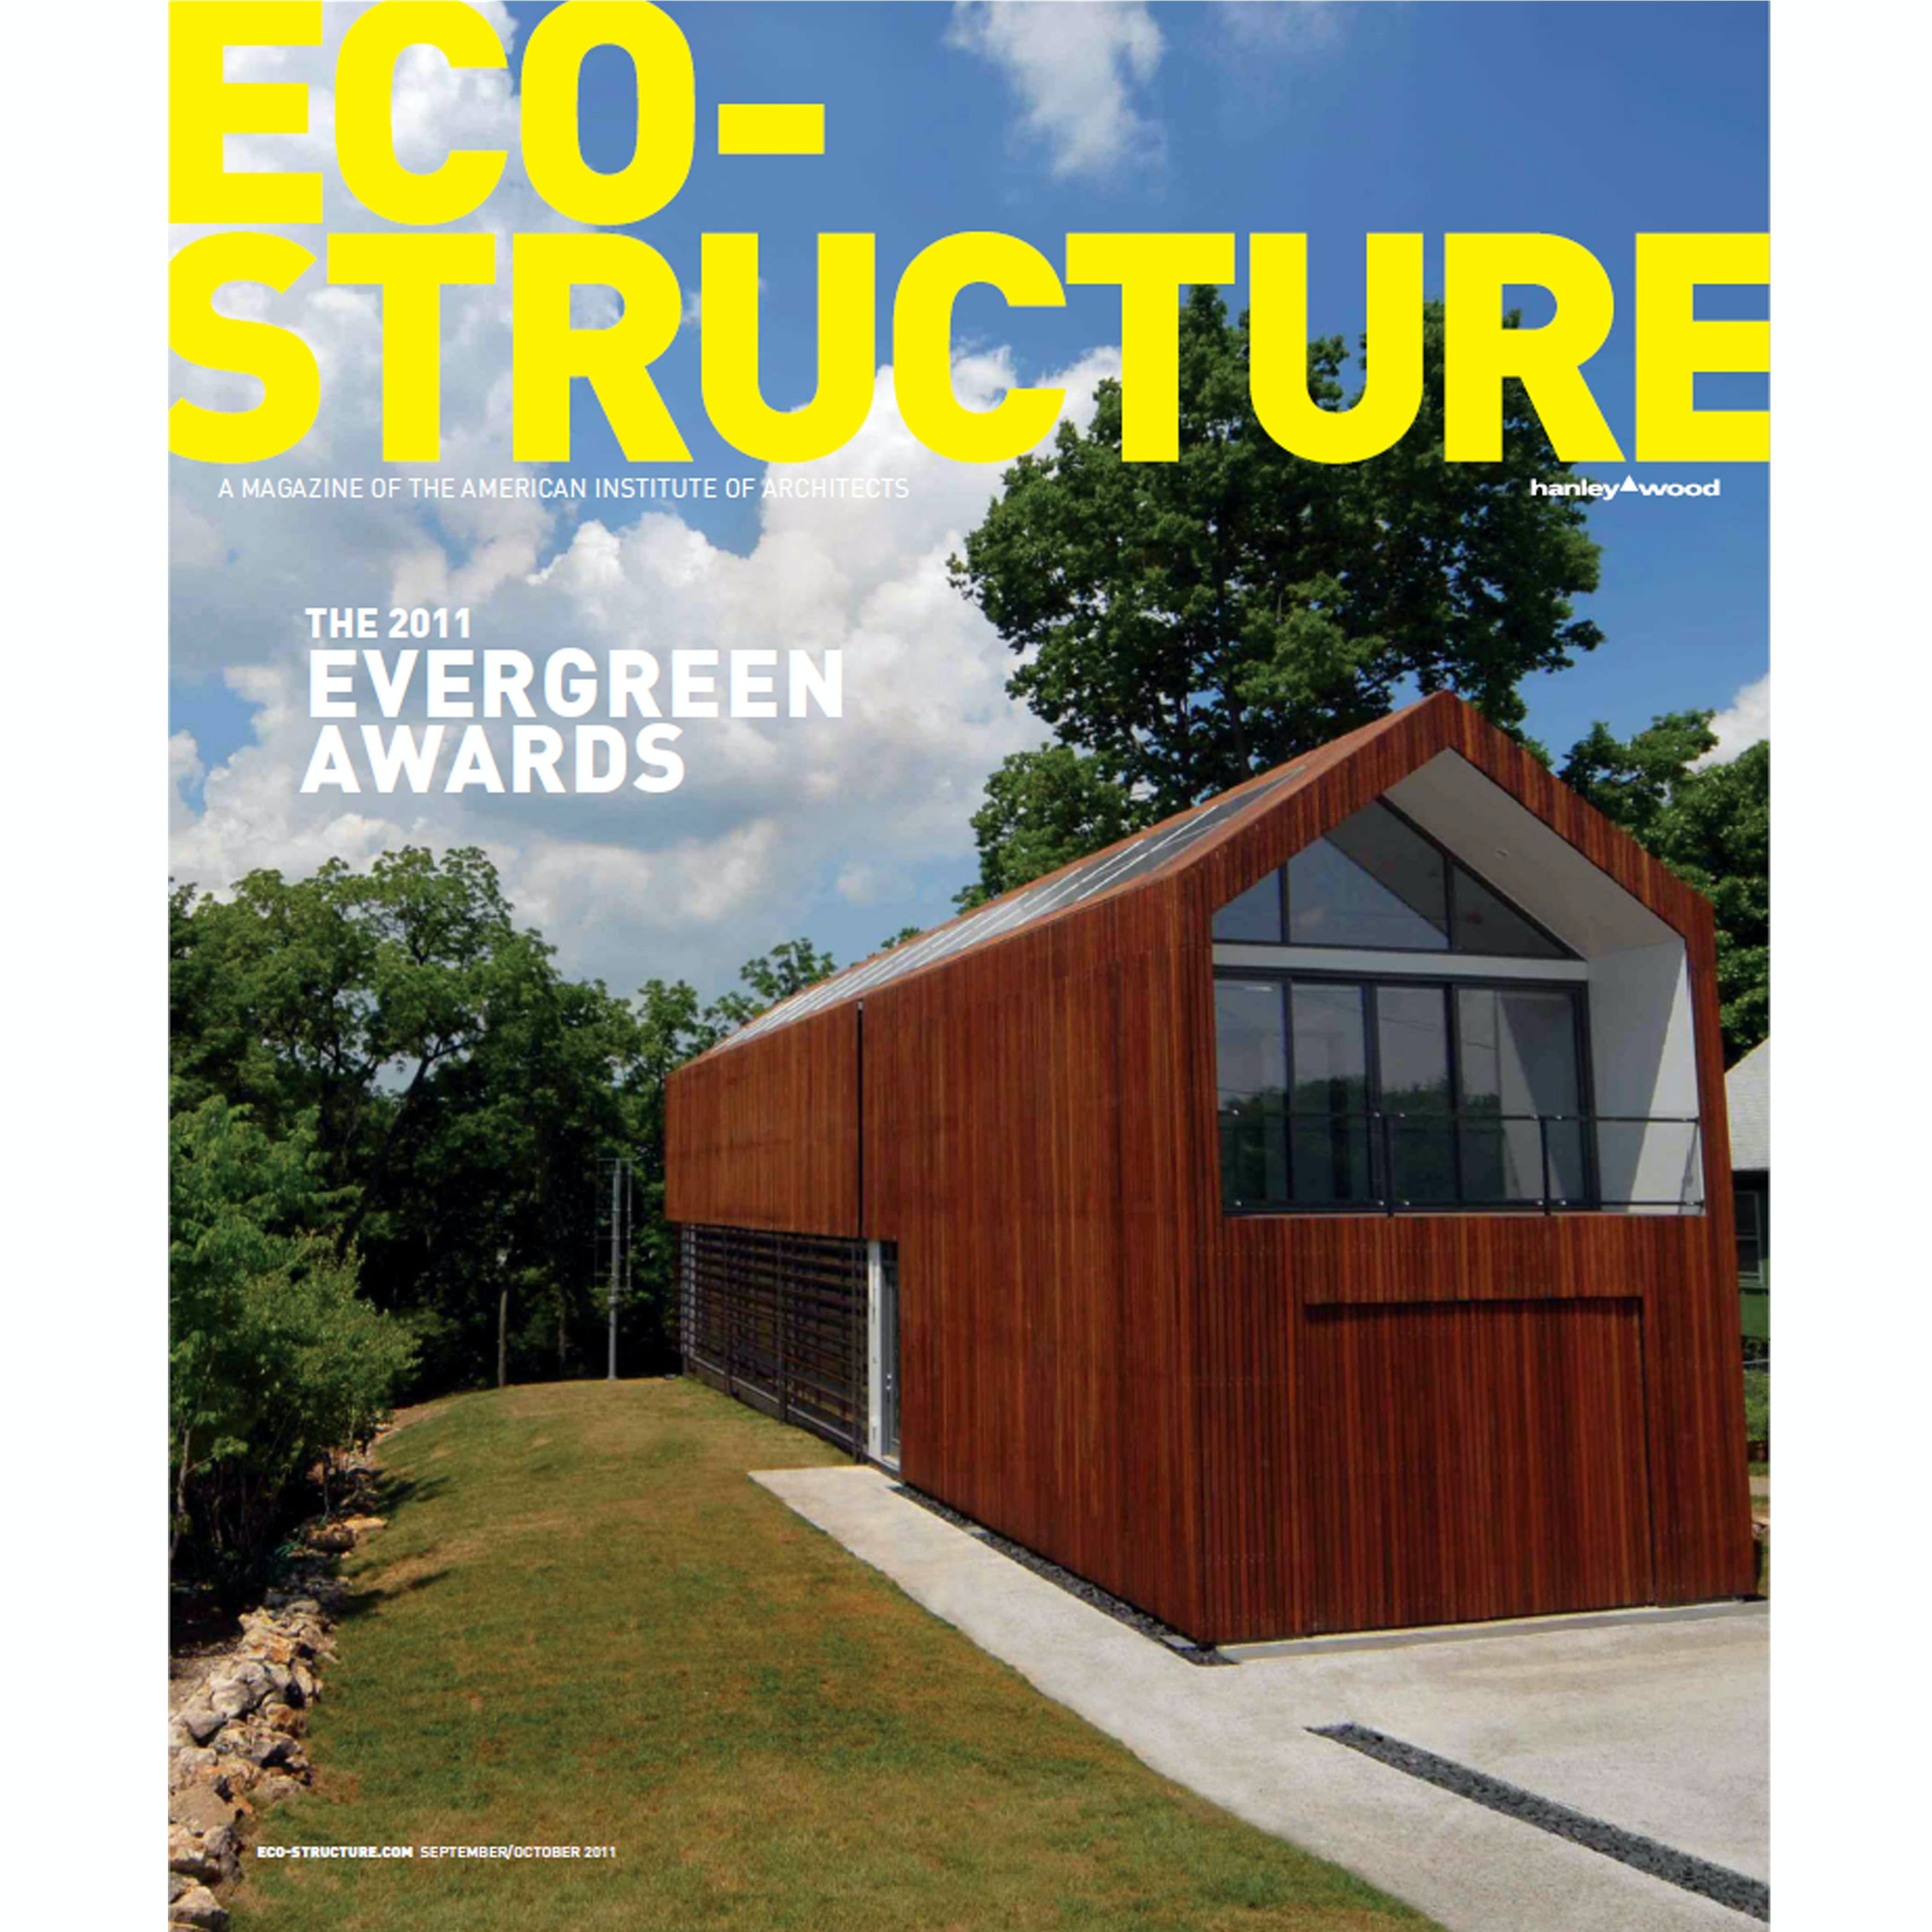 Rvtr eco structure oct 11